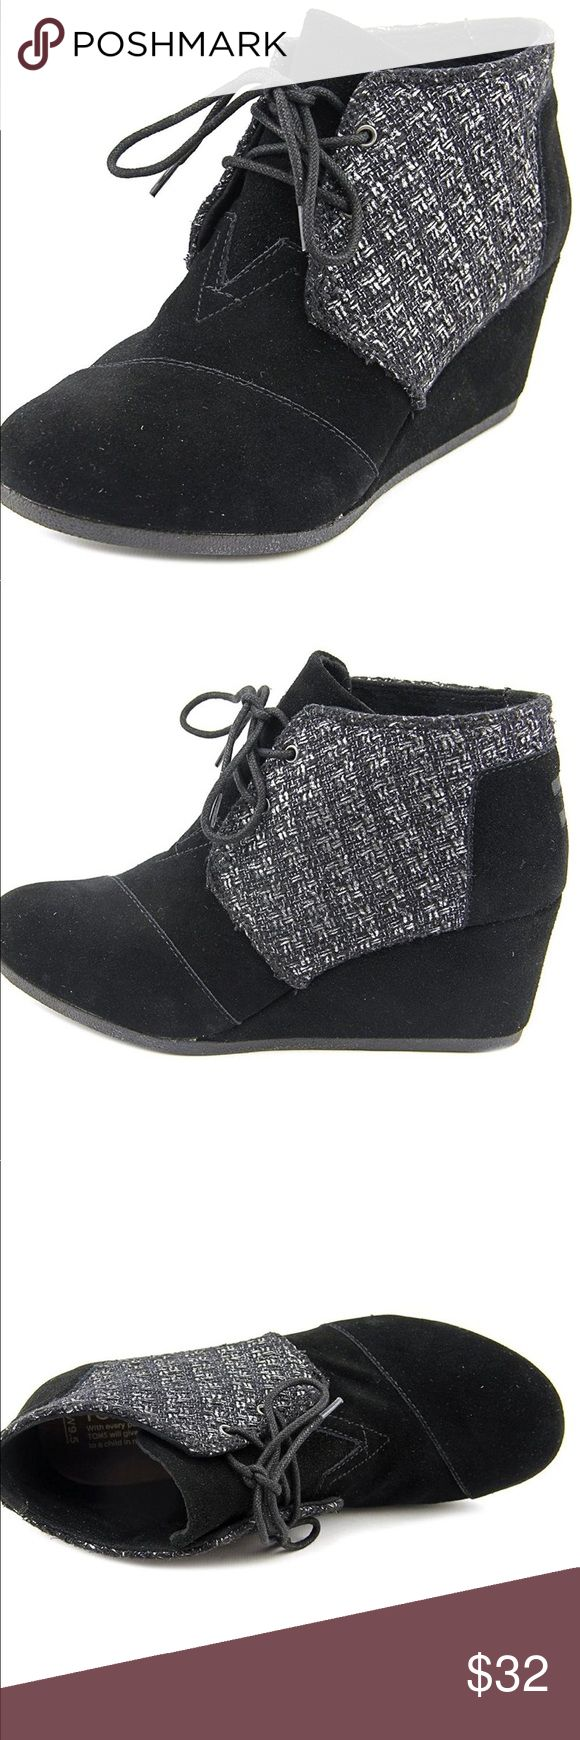 Brand New Toms Desert Wedge Booties Brand new toms desert wedge booties in black suede metallic boucle. These are so cute and the colors are perfect! Lace up for comfort - perfect for any outfit, season or occasion! Brand new without the box, but never been worn! You must have these! Let me know if you have any questions! TOMS Shoes Ankle Boots & Booties